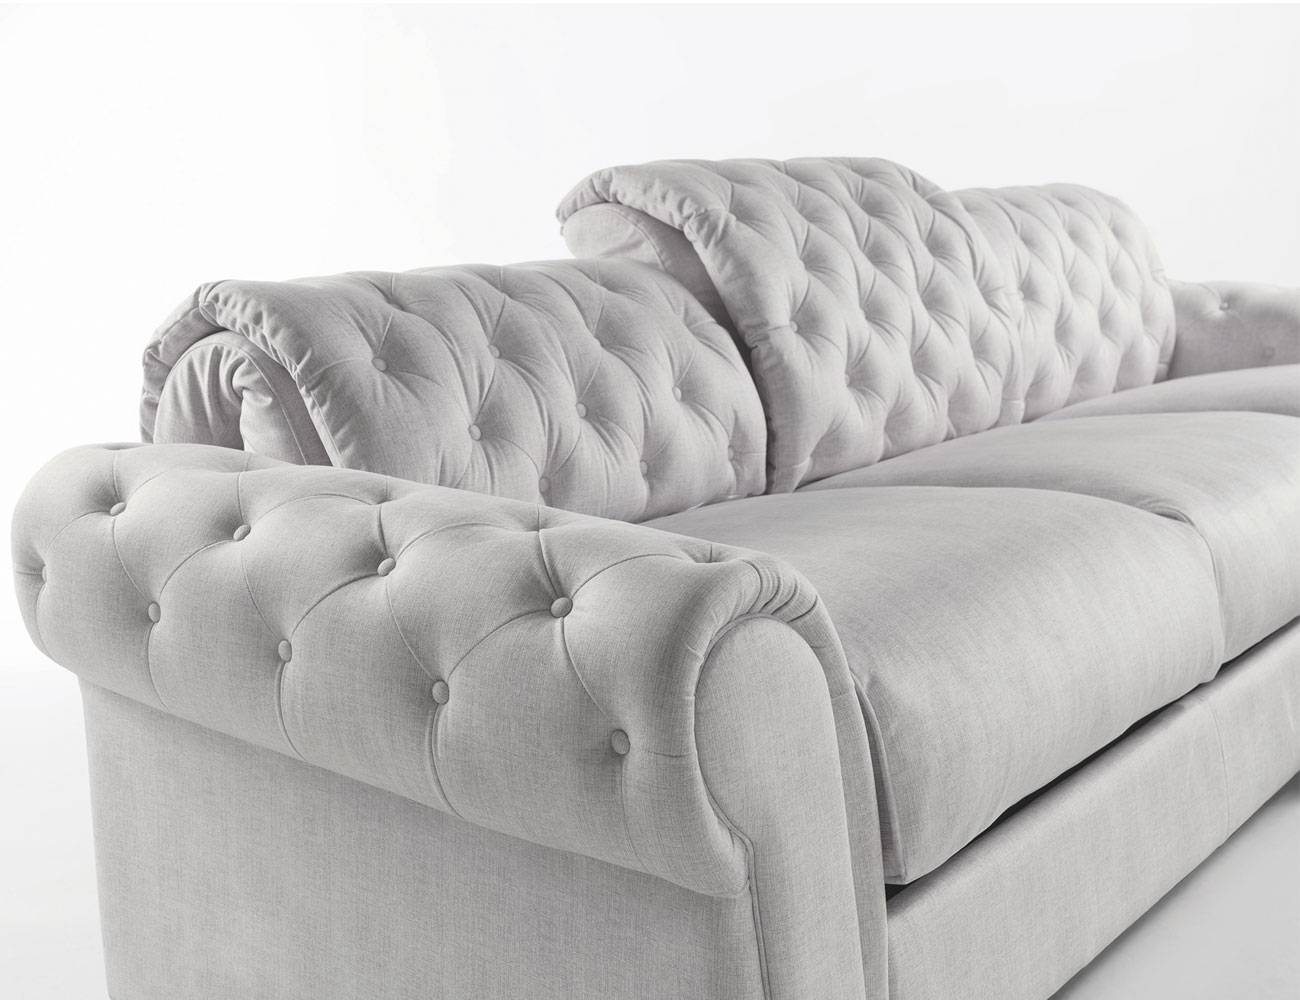 Sofa chaiselongue gran lujo decorativo capitone blanco tela 115